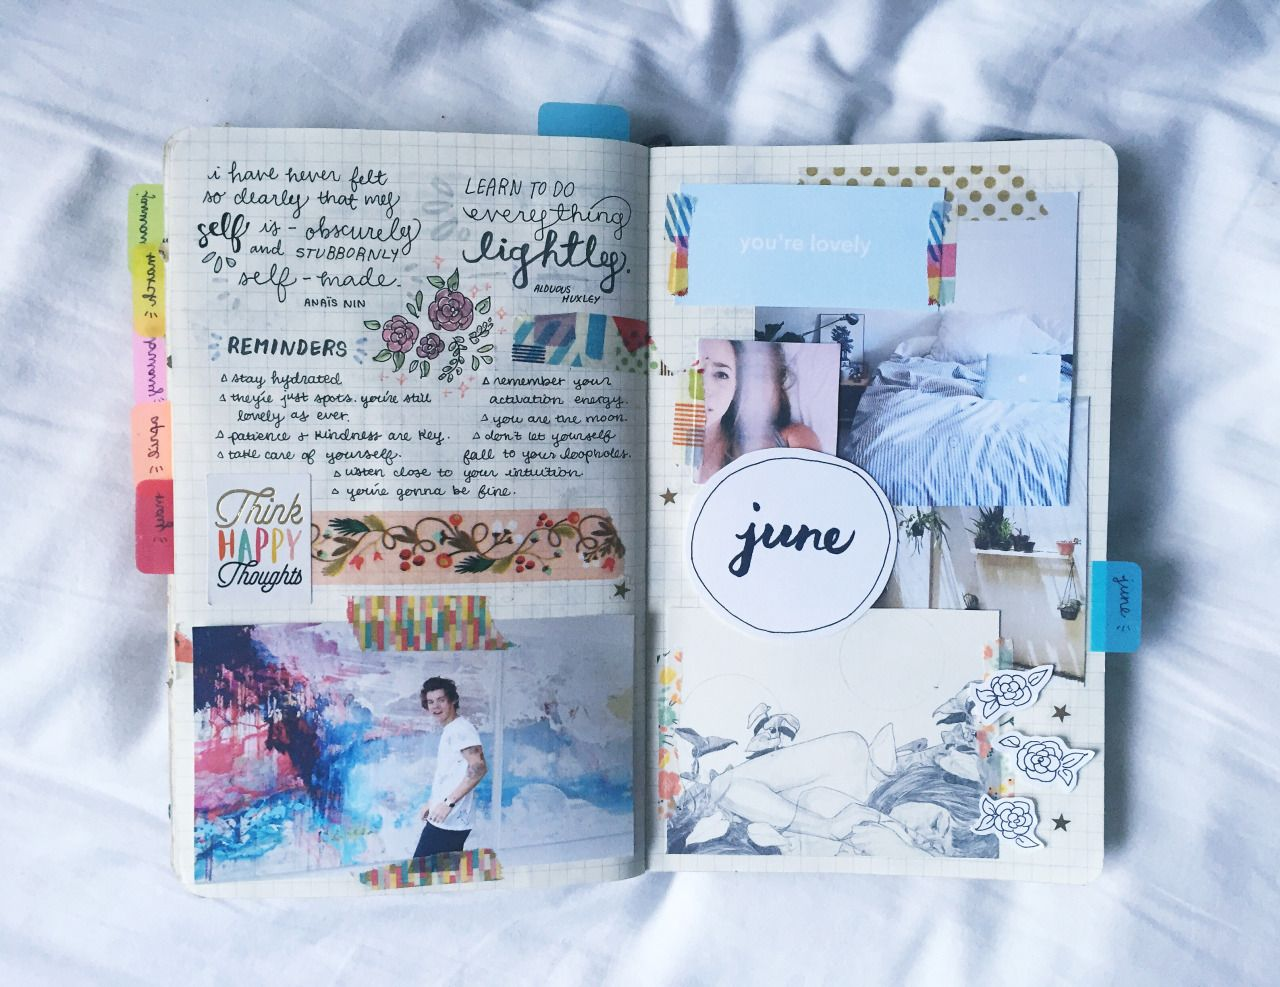 Vintage style scrapbook ideas - Find This Pin And More On Scrapbook Ideas